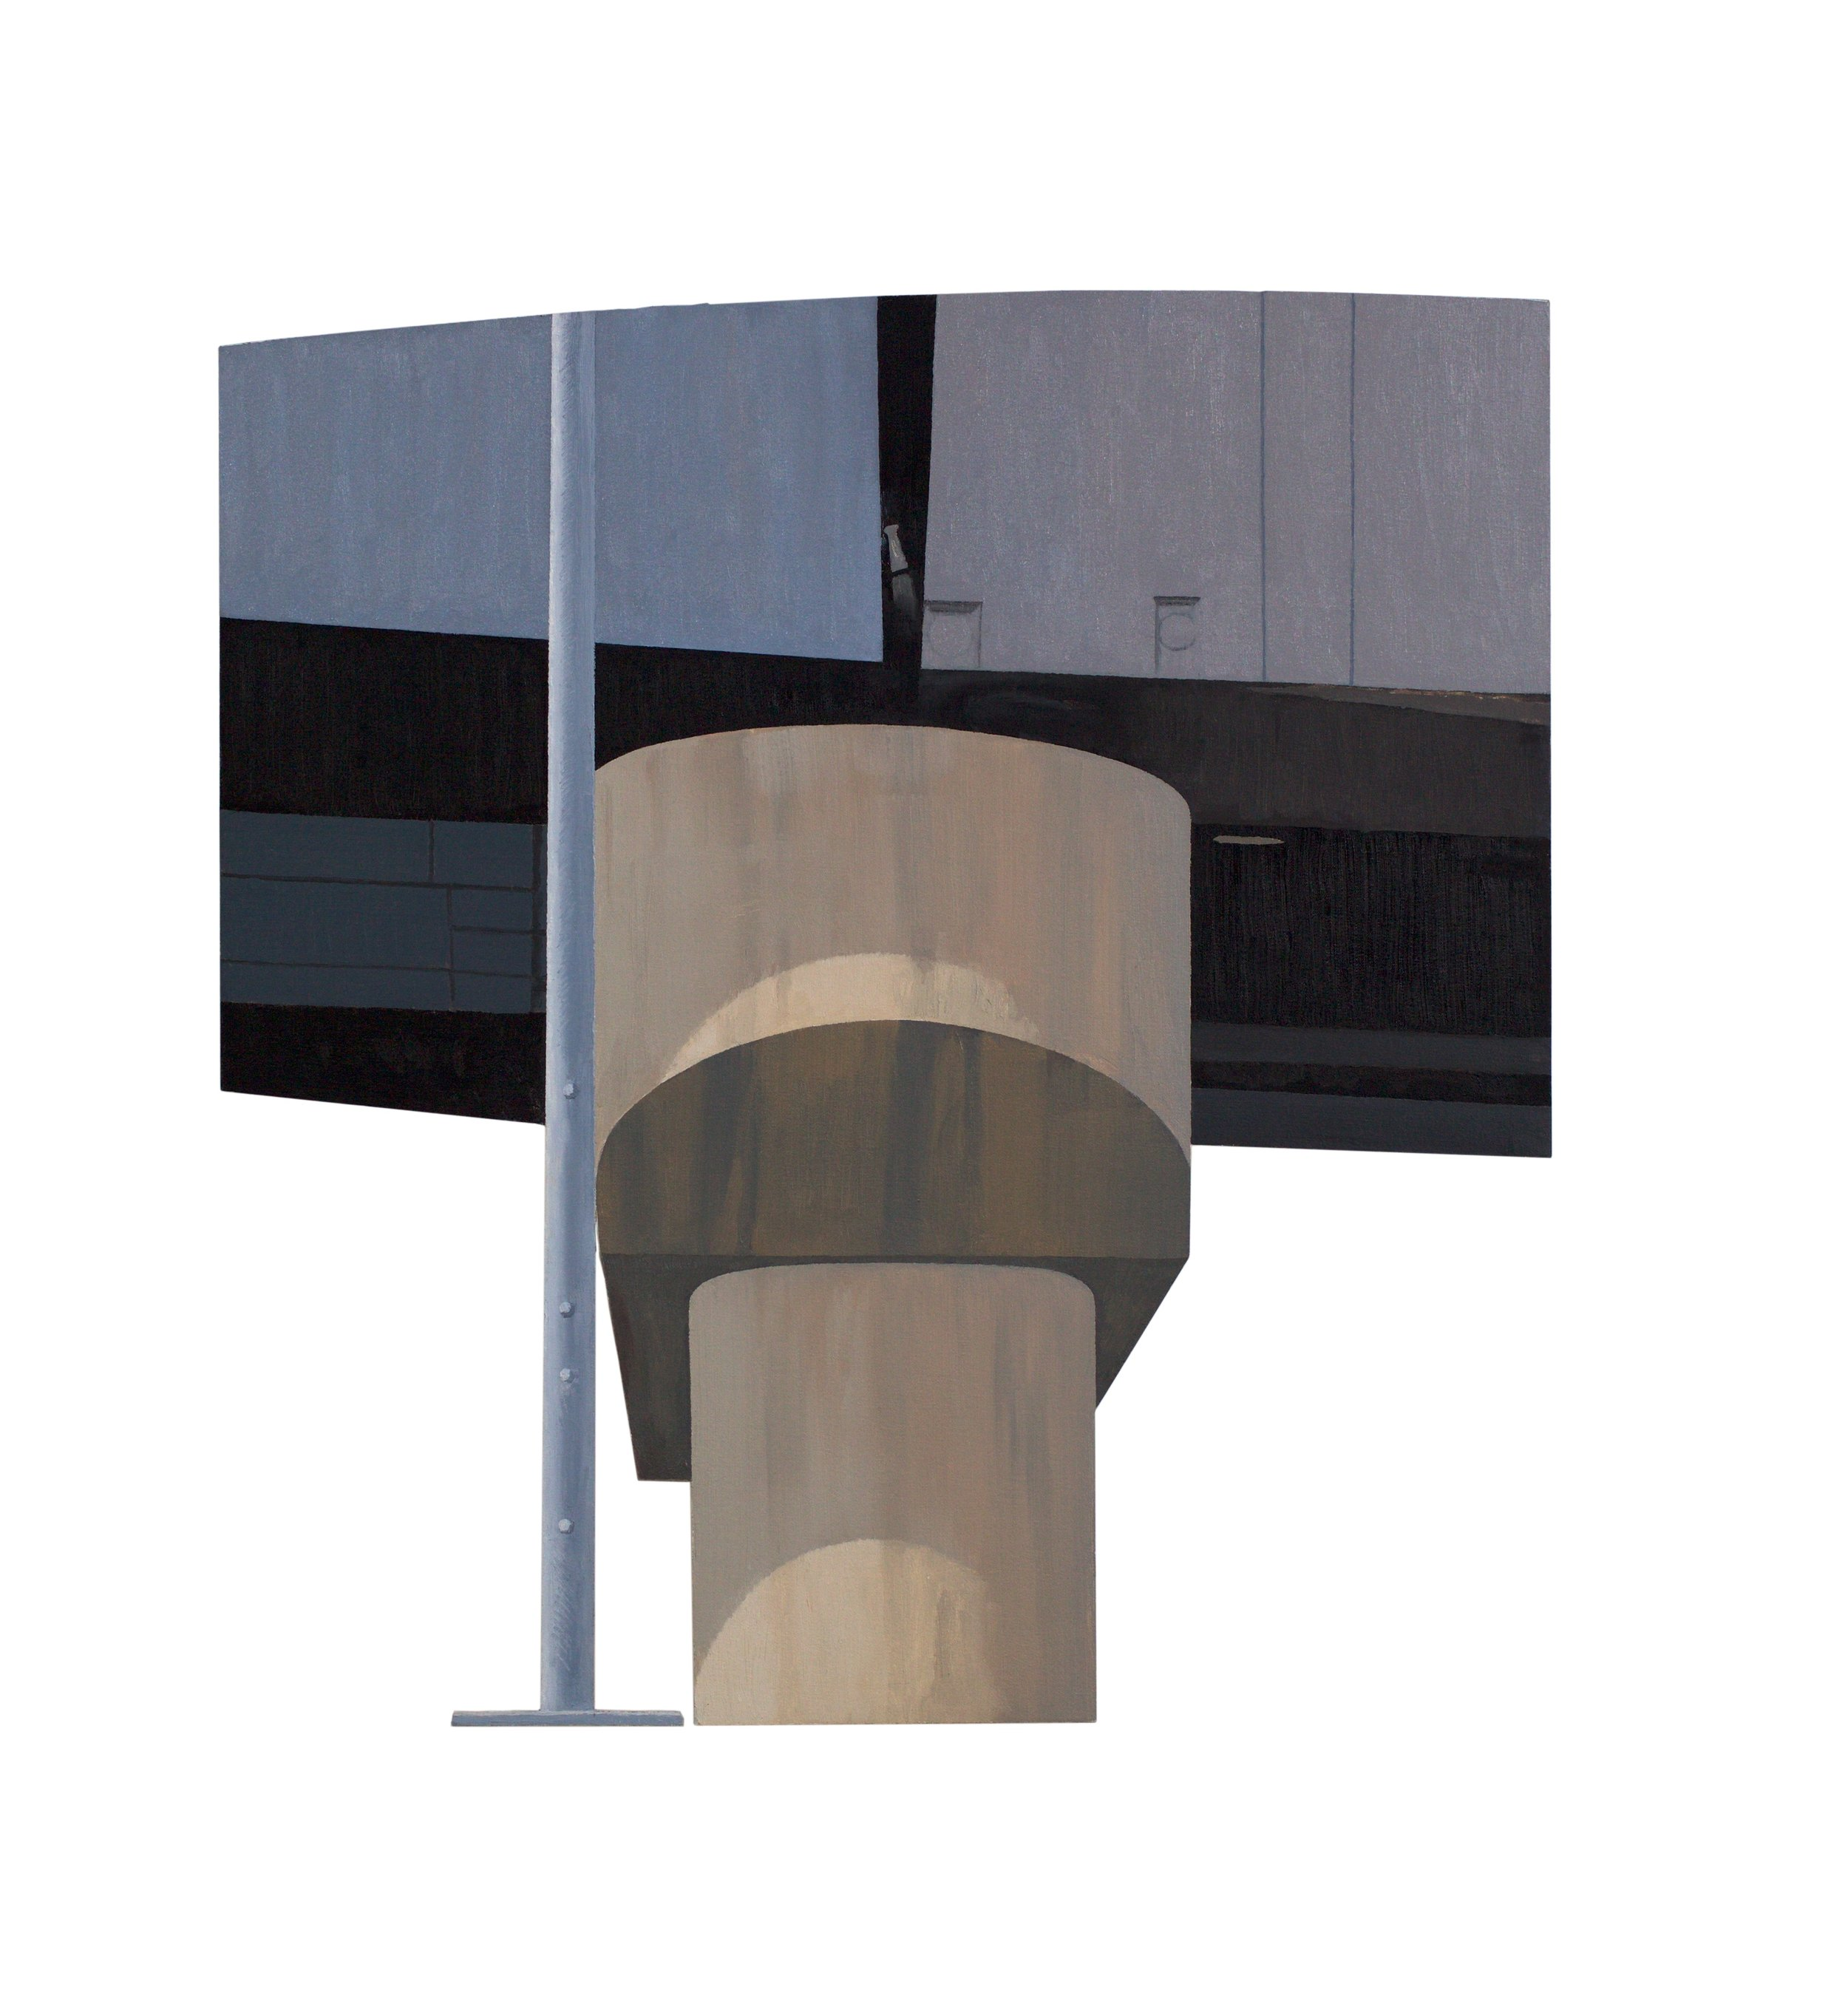 supporting column, elevated cloverleaf, Boston